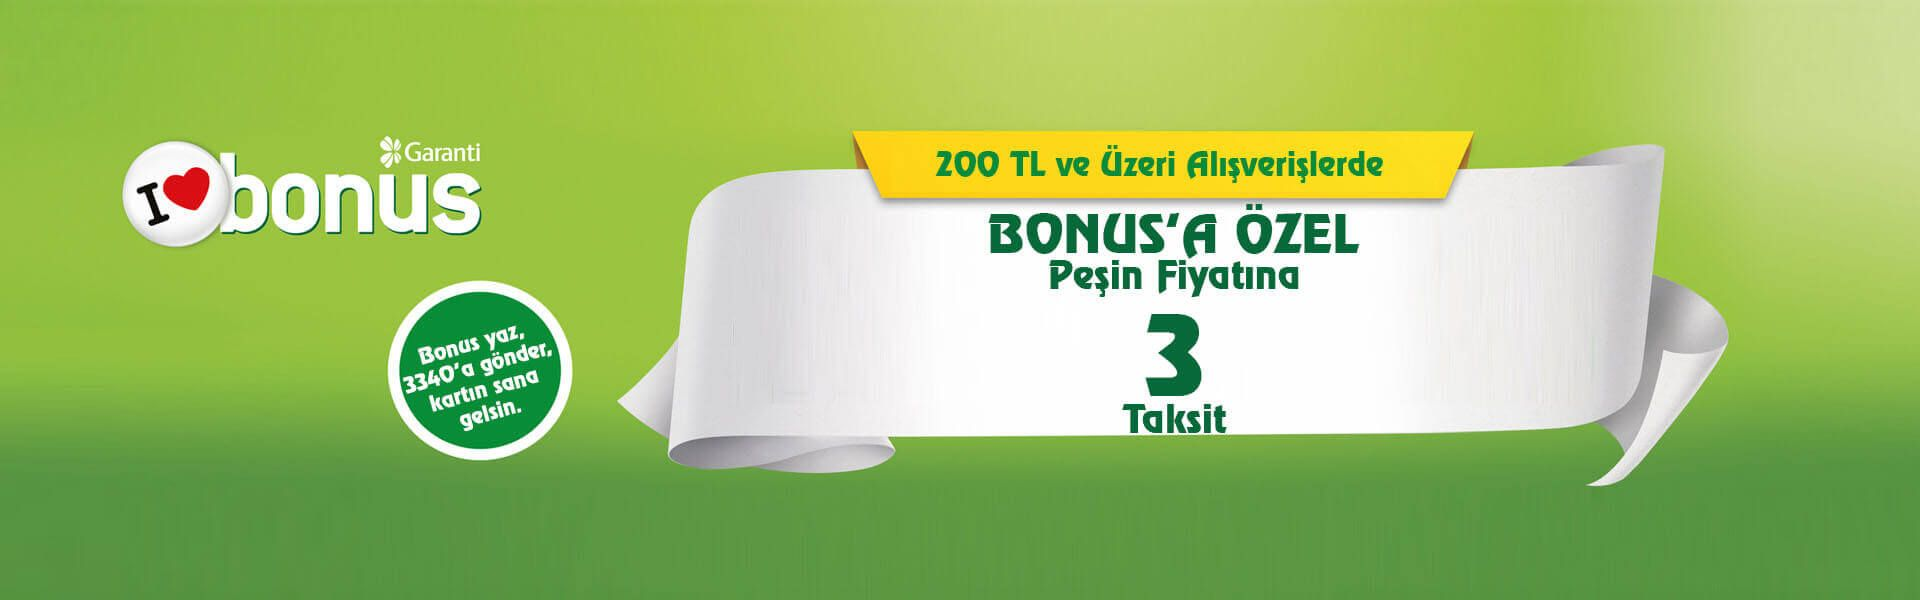 200 TL ve Üzeri Alışverişlerde Bonus'a Özel Peşin Fiyatına 3 Taksit